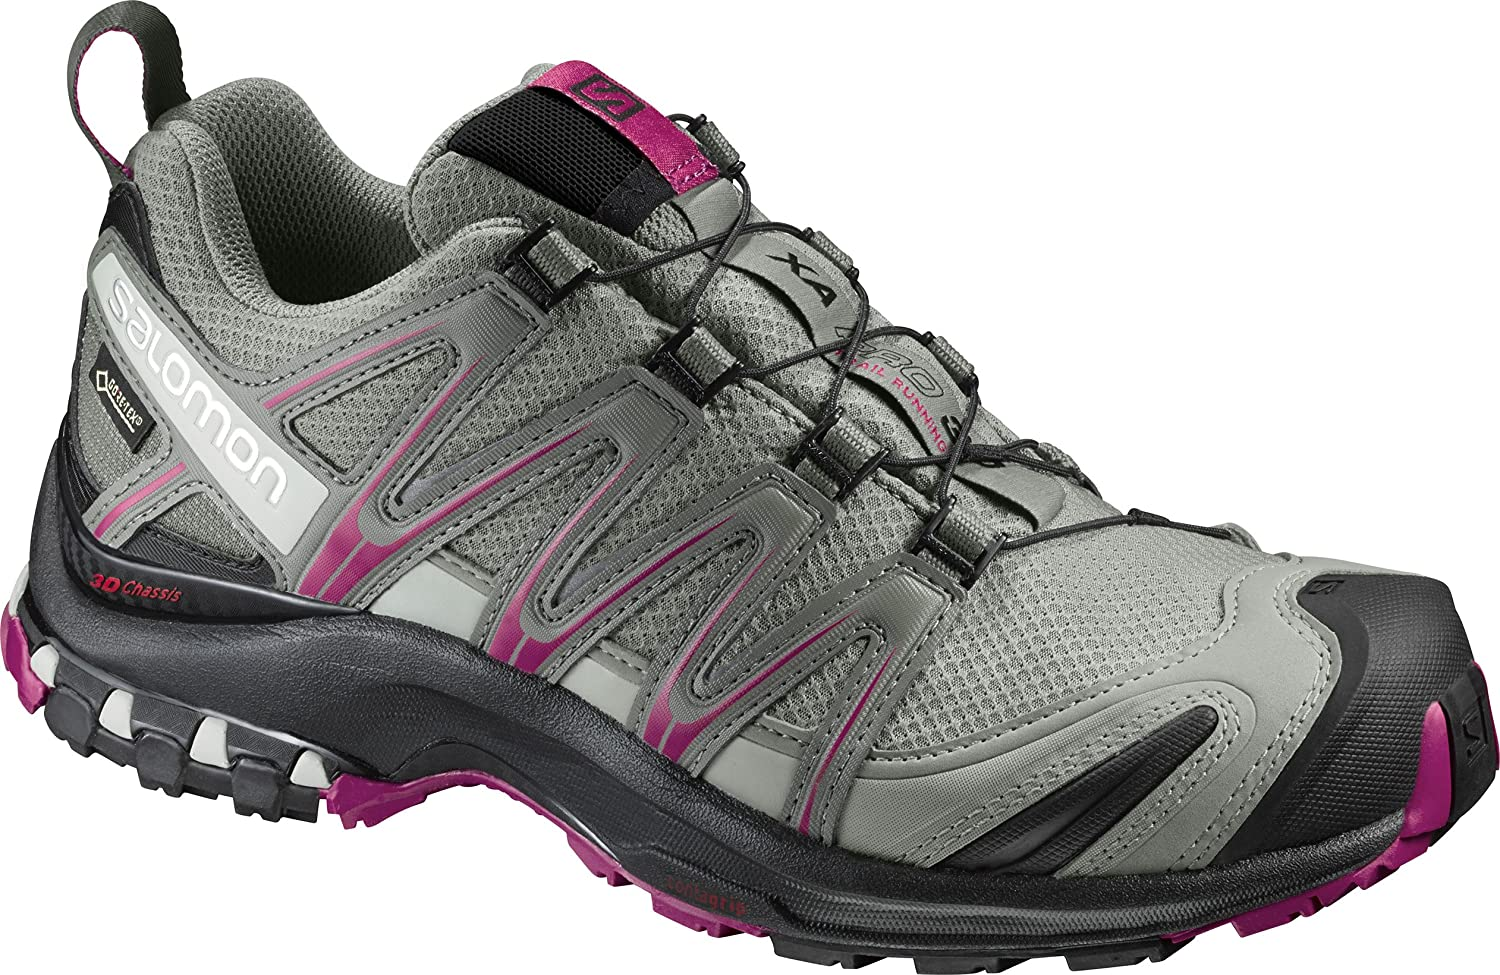 Salomon Women's Xa Pro 3D GTX W Trail Runner B01HD2S02C 8 M US|Shadow